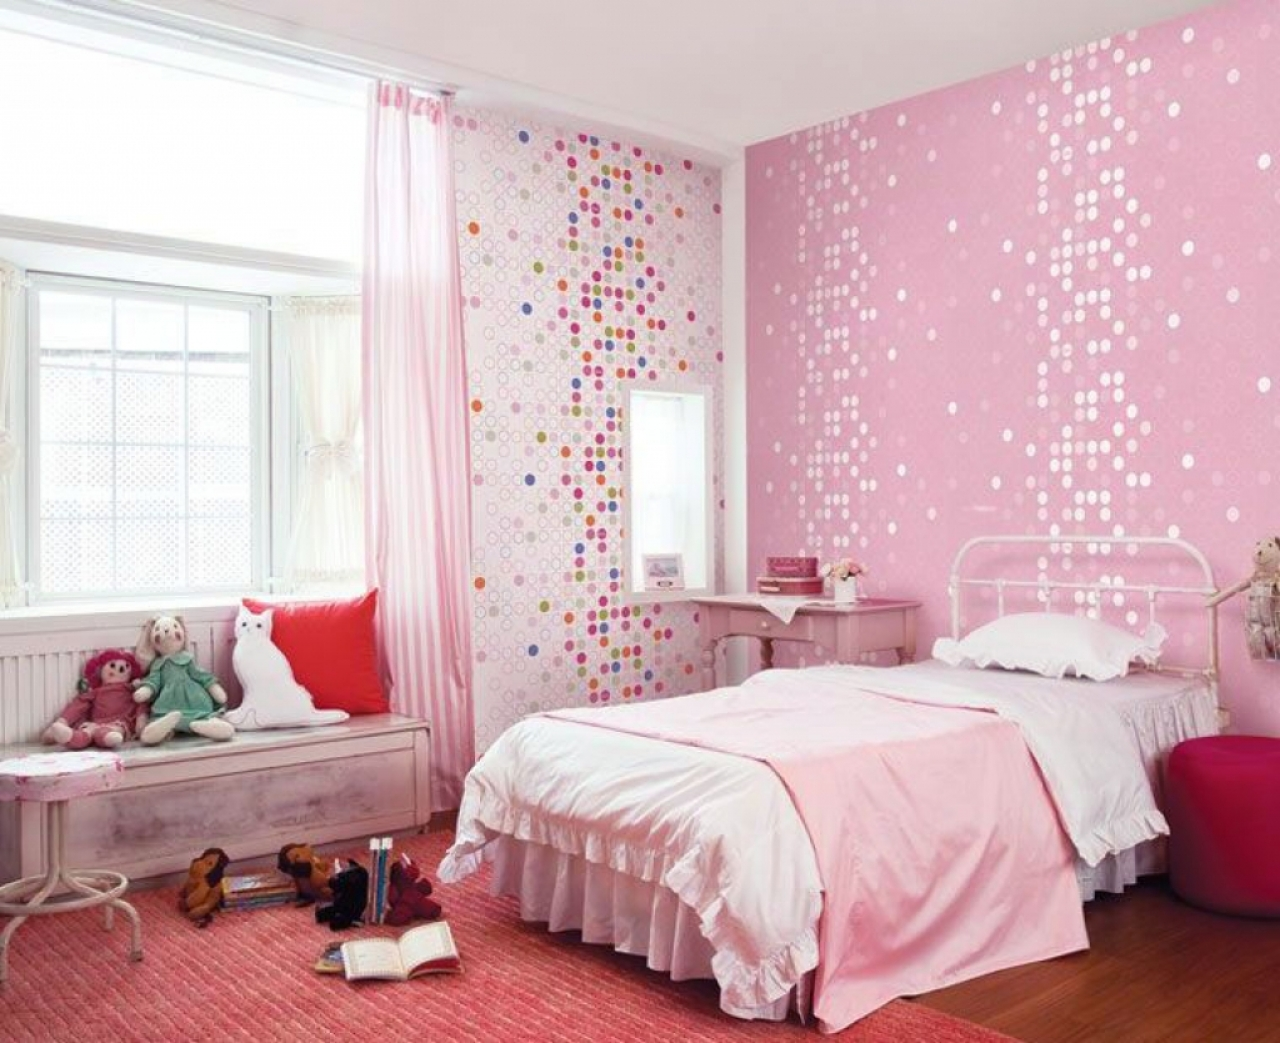 Free download Bedroom Wallpaper Designs [1280x1043] for your